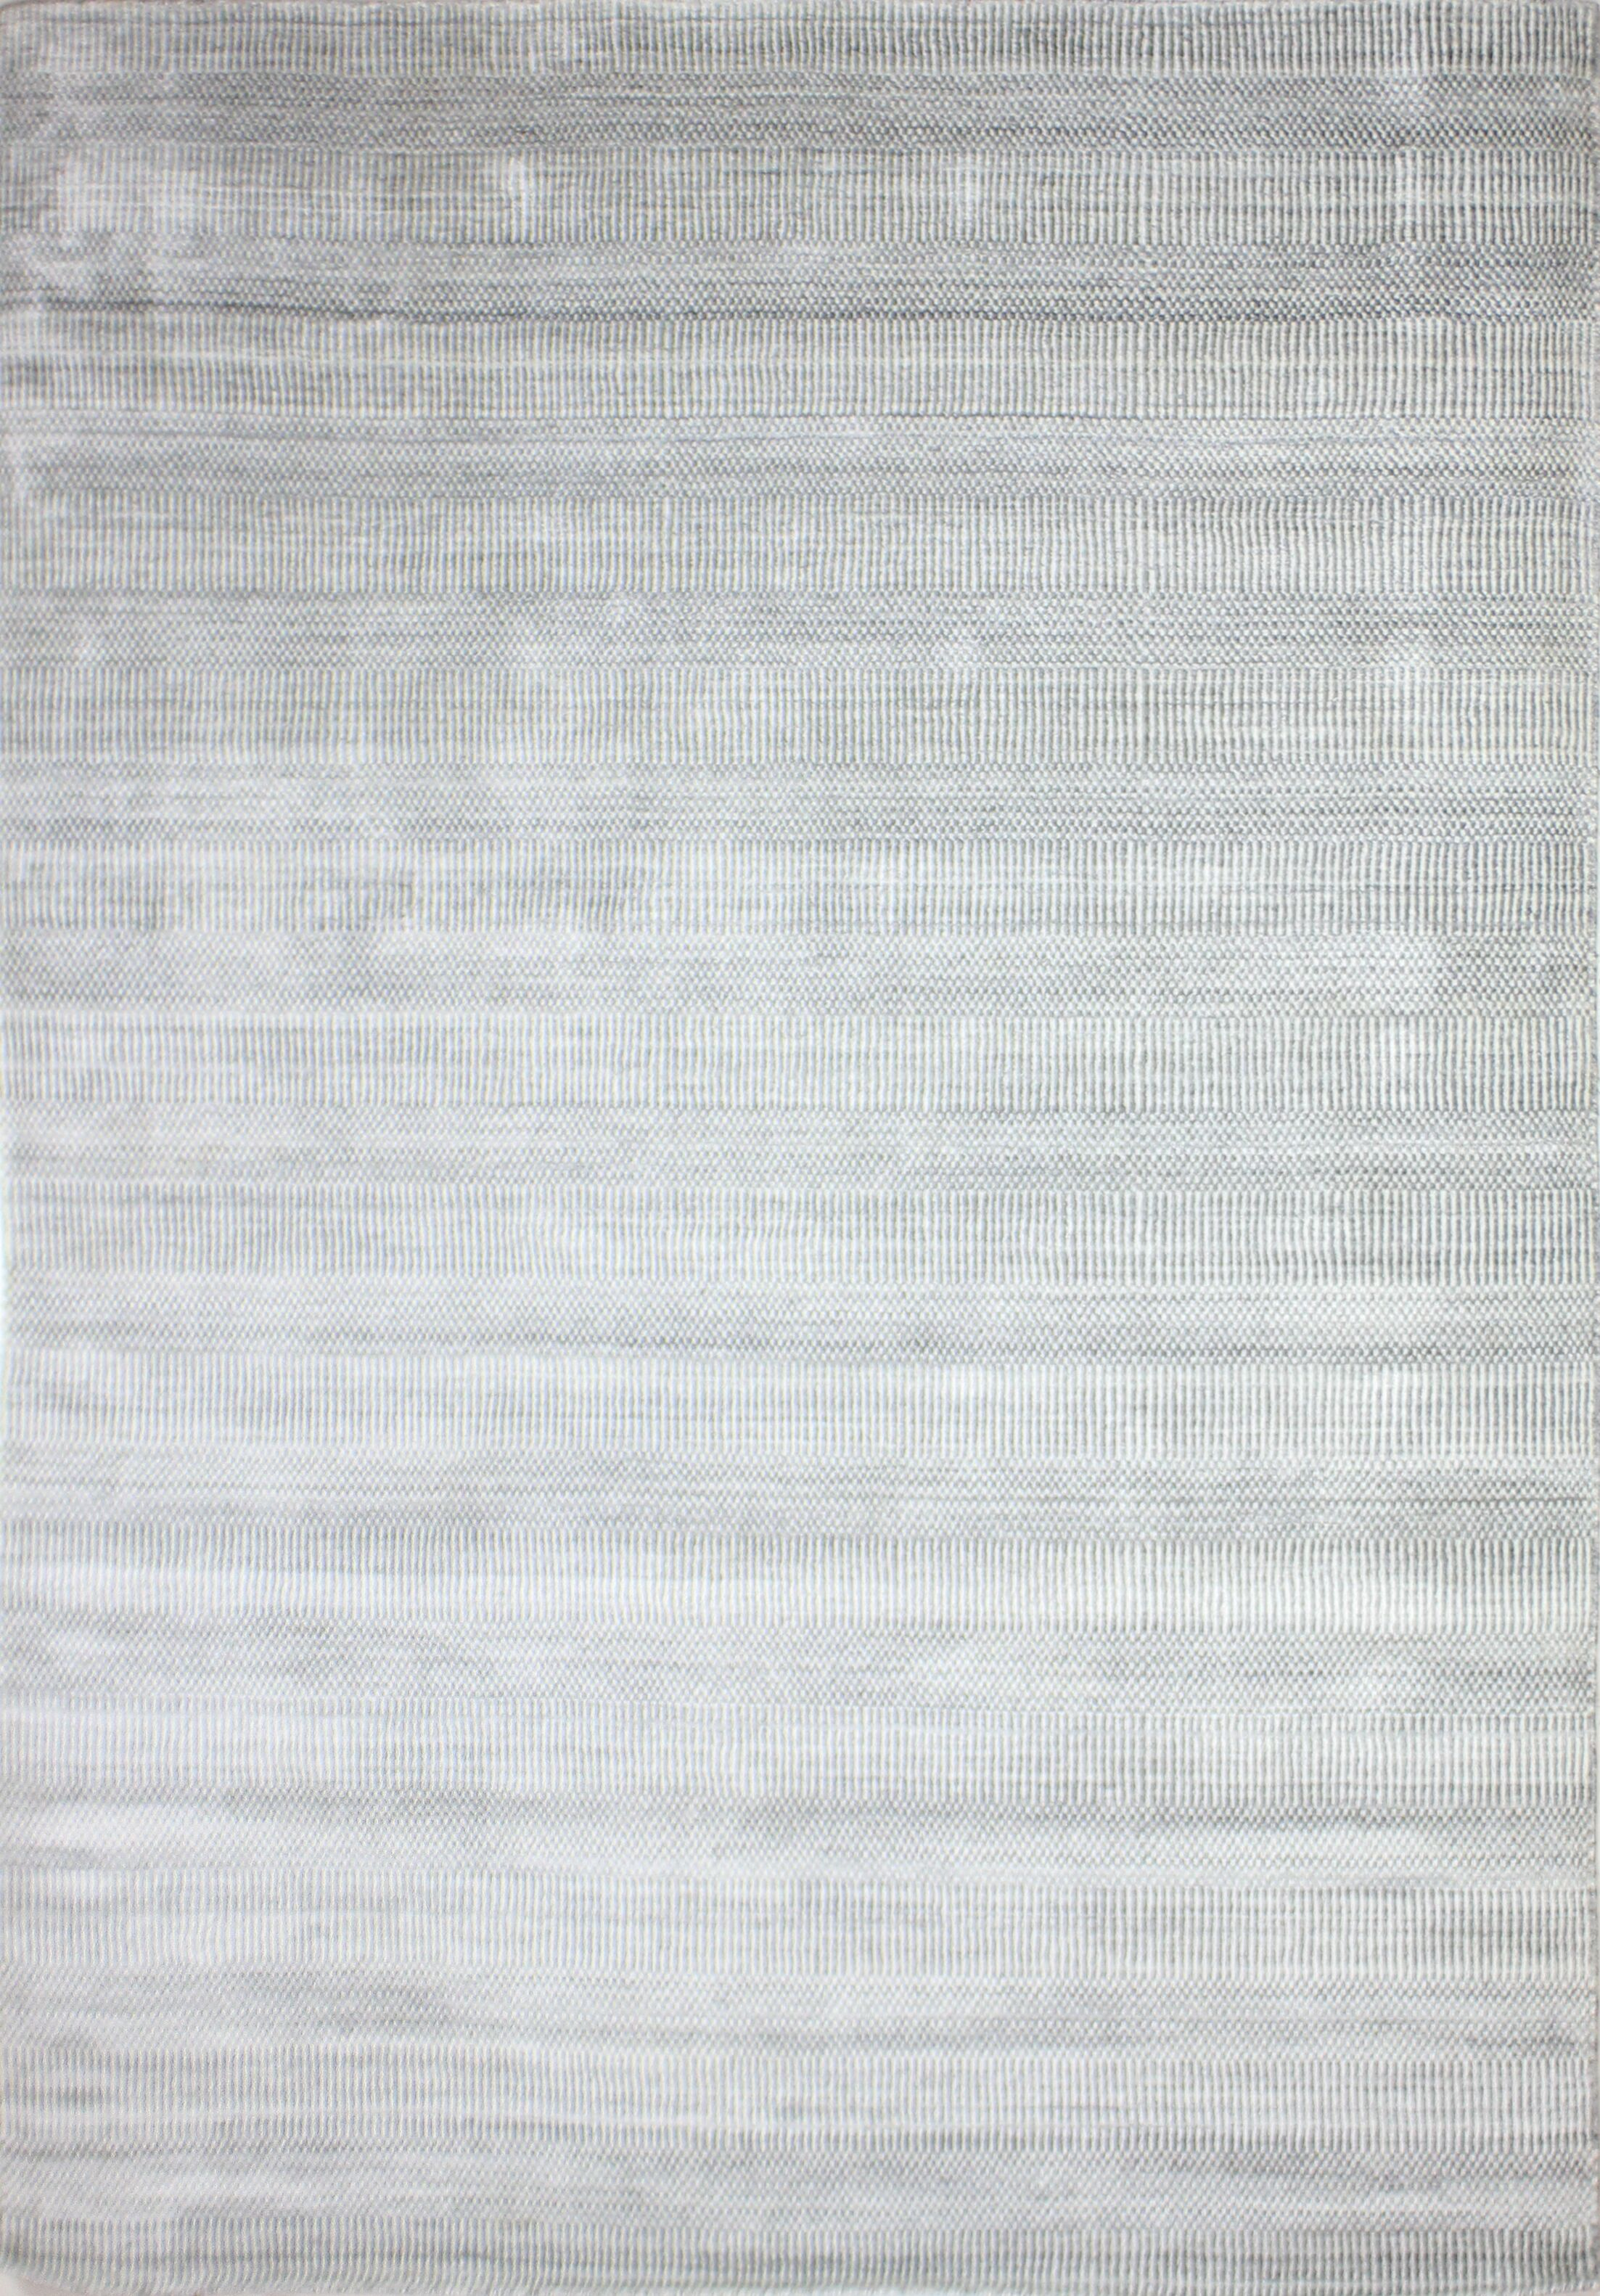 One-of-a-Kind Meidell Hand-Woven Wool Charcoal Area Rug Rug Size: Rectangle 6' x 9'